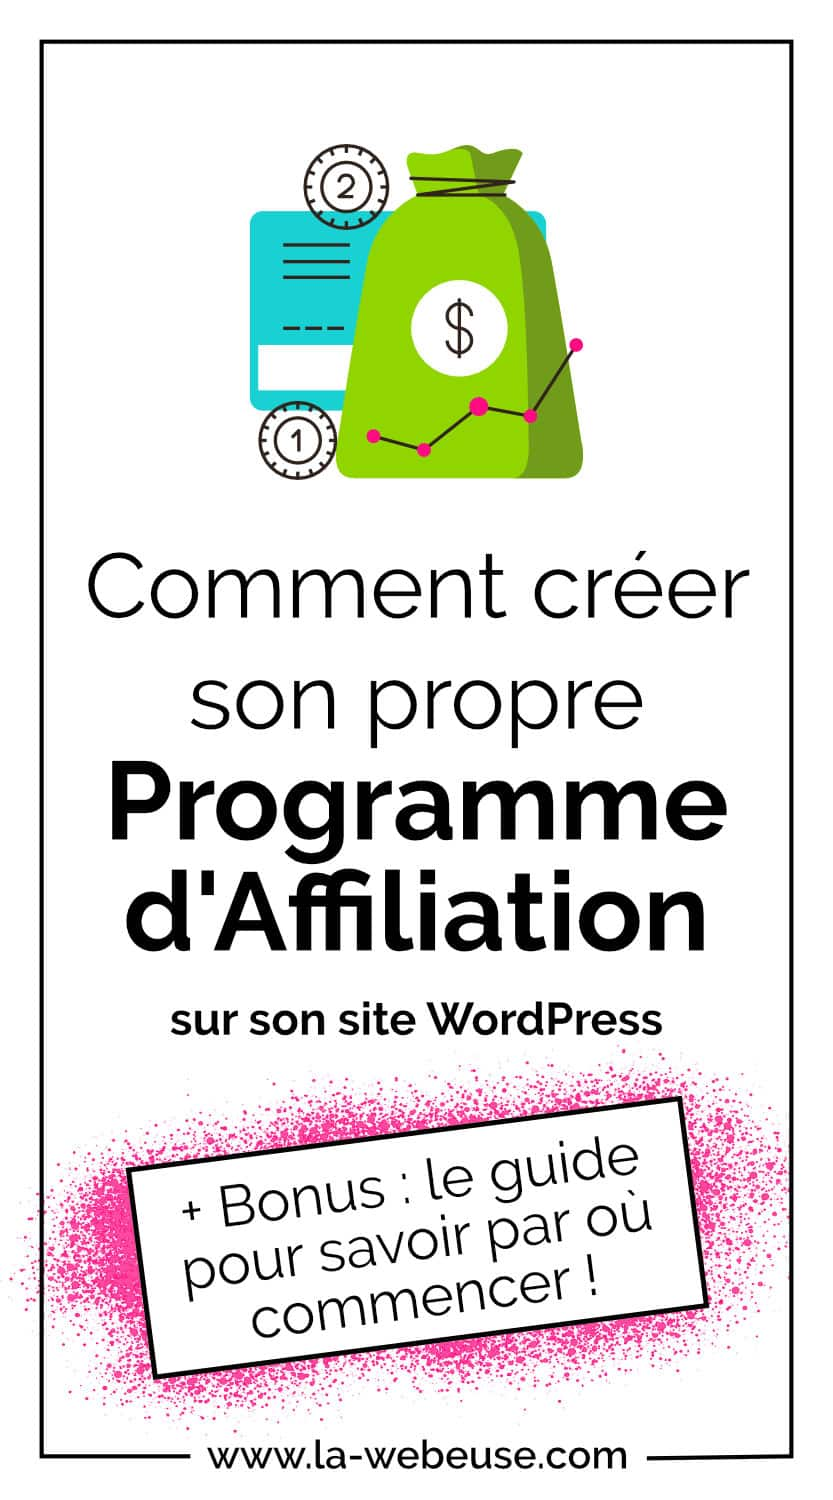 Comment créer son programme d'affiliation sur WordPress ?